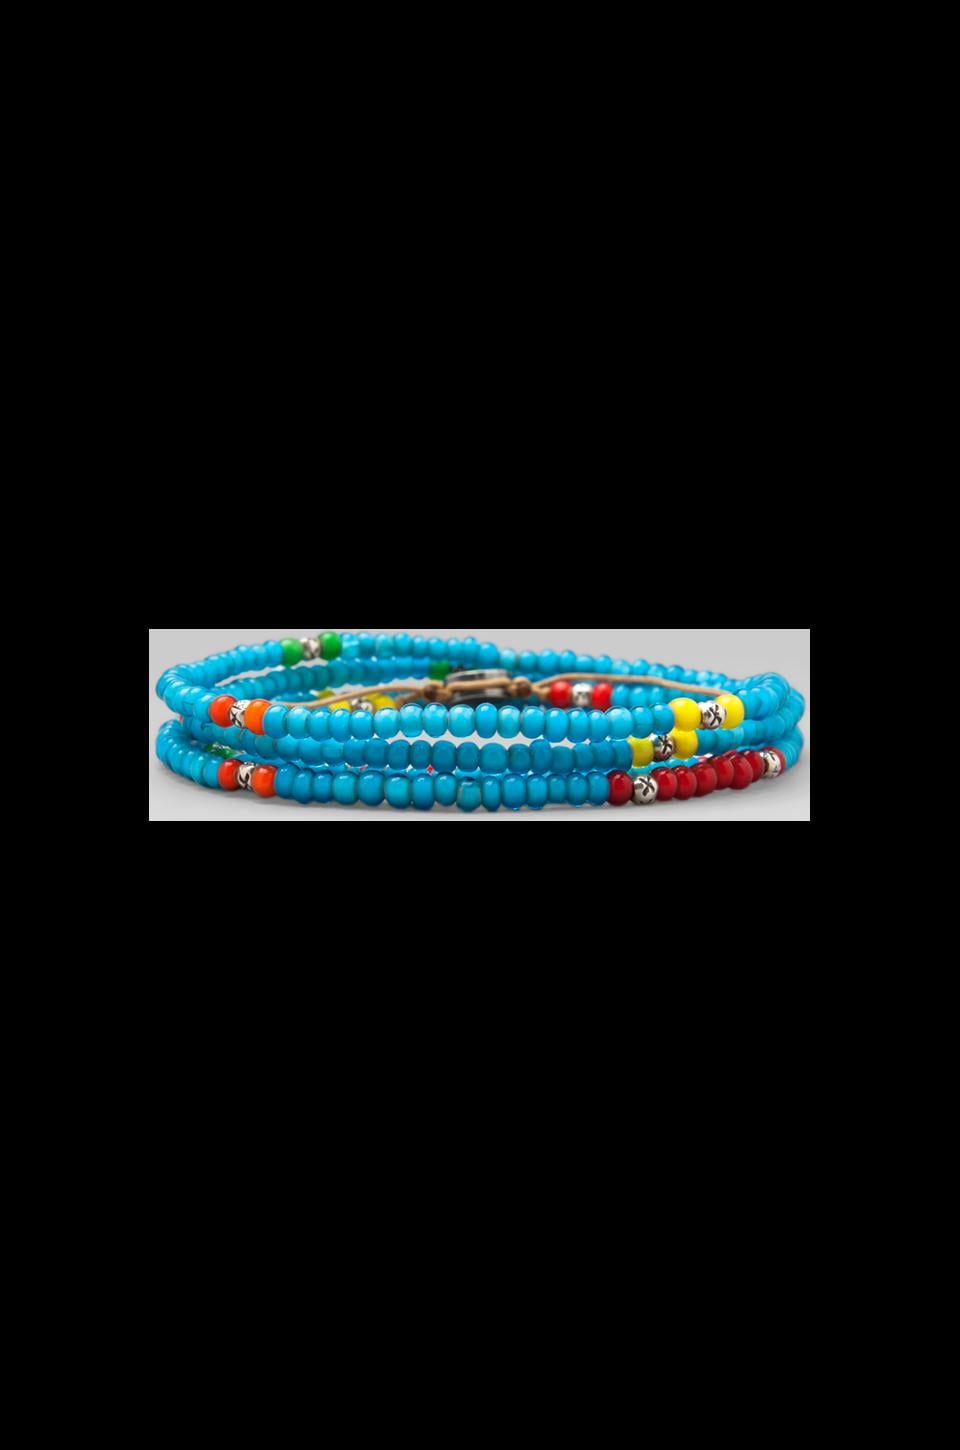 M.Cohen 4-Wrap Mini African Glass Beads Bracelet in Turquoise